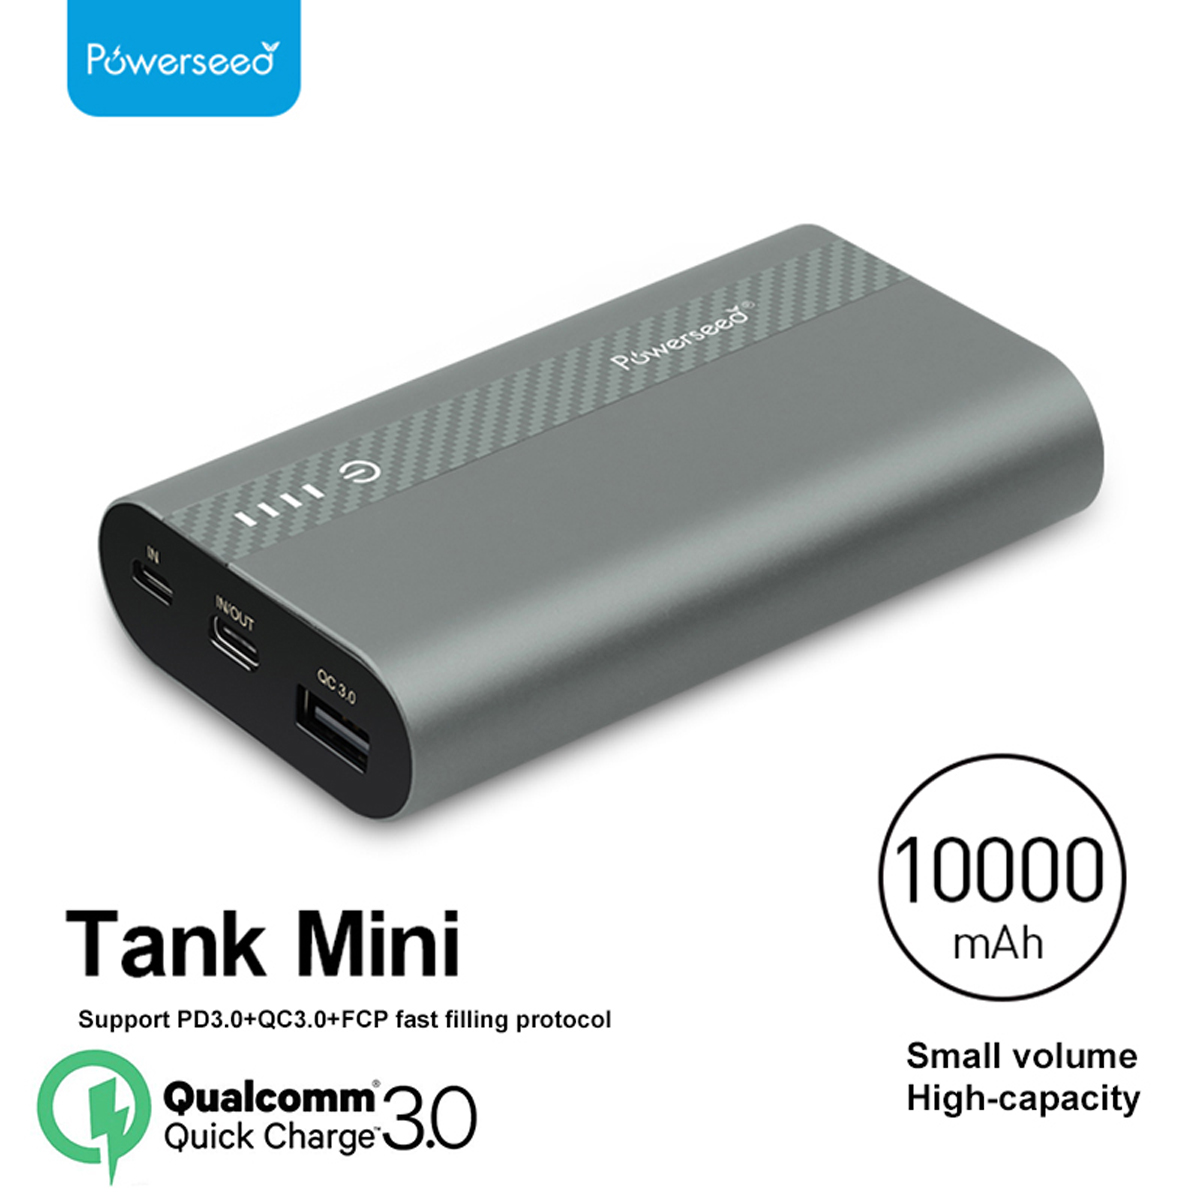 Powerseed 10000 mah QC3.0 Quick Charge 3,0 Power Bank Dual USB Power Tragbare Externe Batterie Ladegerät Für iPhone Für Samsung